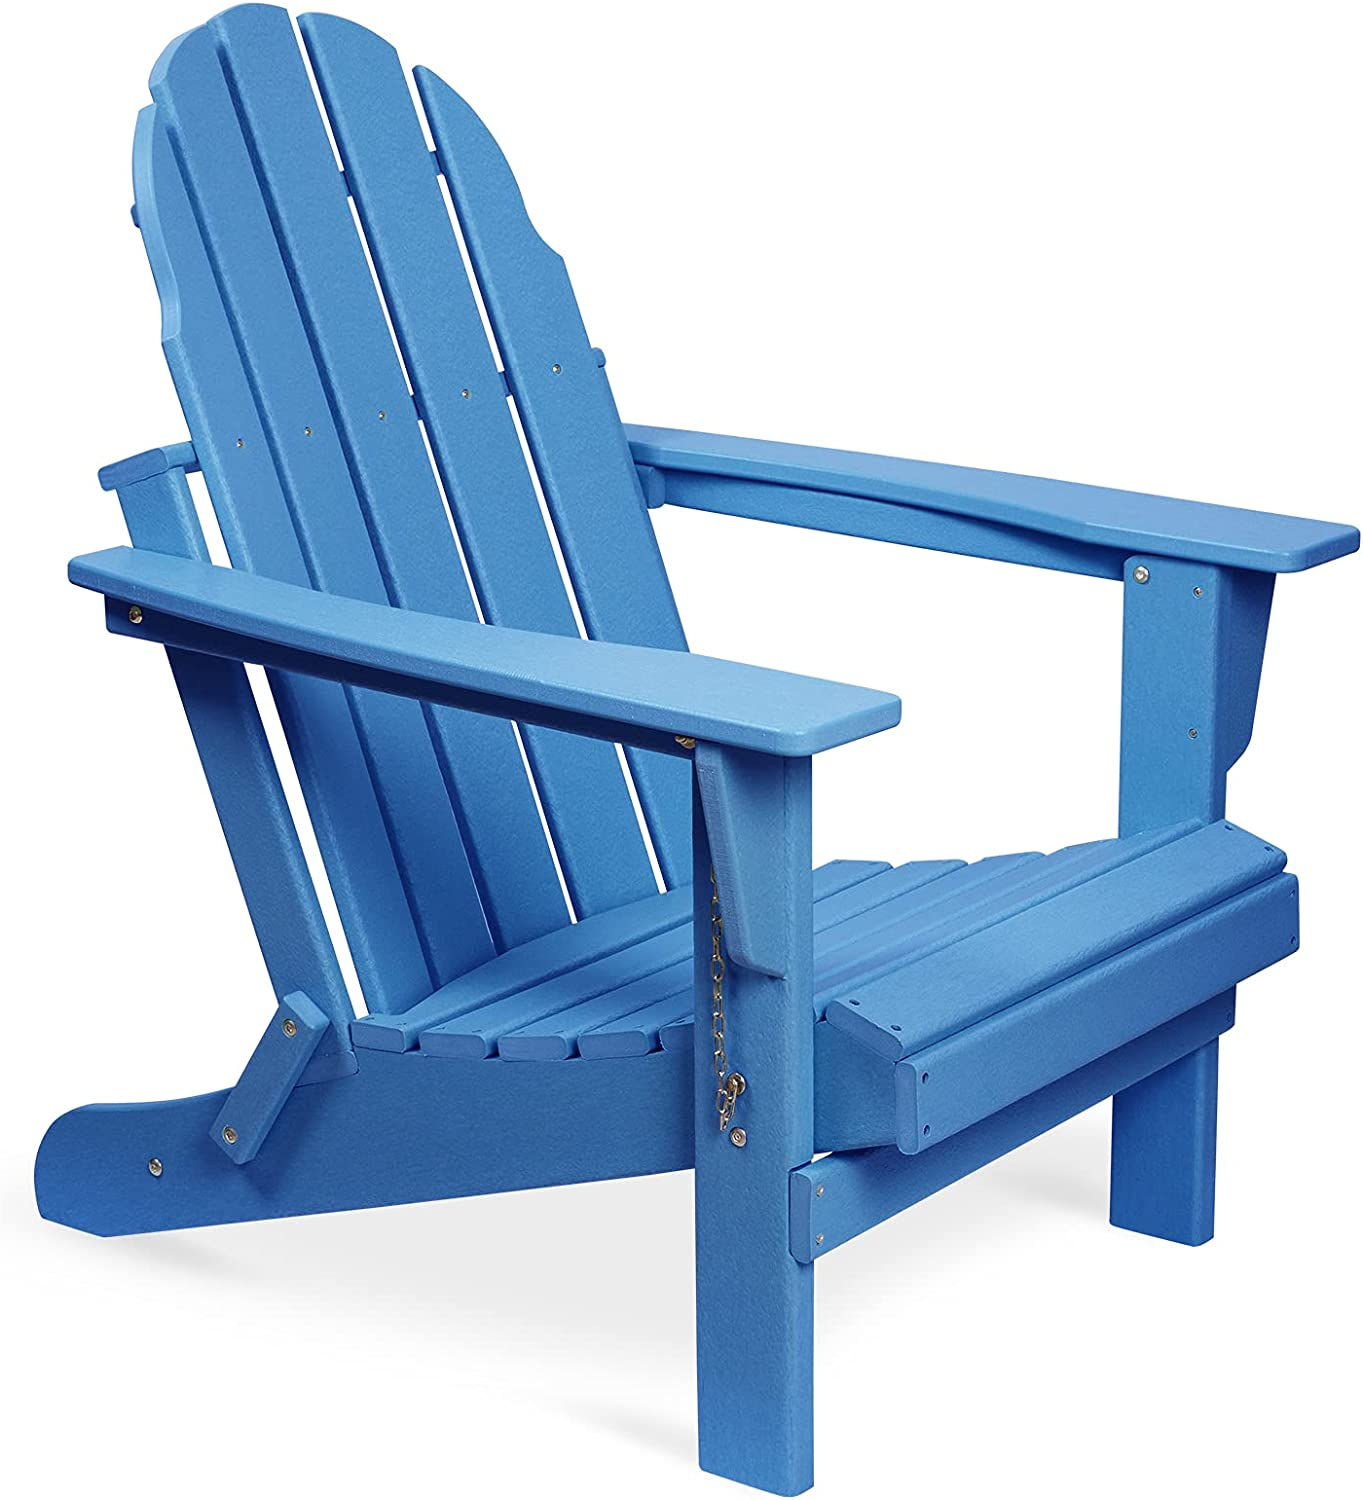 Folding Adirondack Chair, Patio Outdoor Chairs, HDPE Plastic Resin Deck Chair, Painted Weather Resistant, for Deck, Garden, Backyard & Lawn Furniture, Fire Pit, Porch Seating by Gettati (Navy)